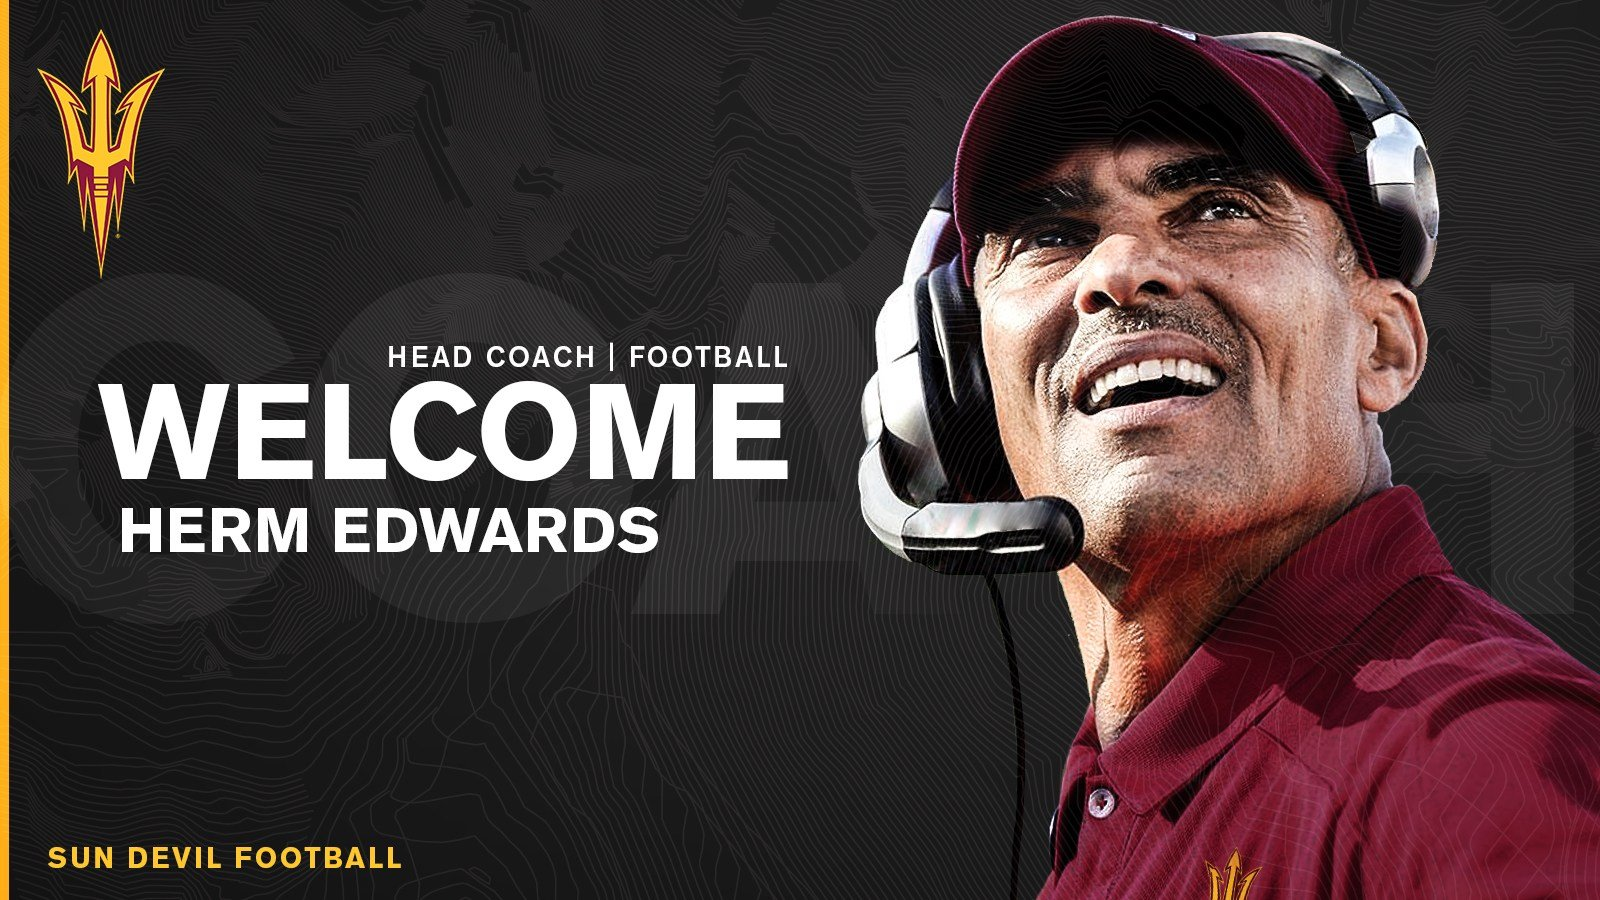 Arizona State hires Herm Edwards as head football coach